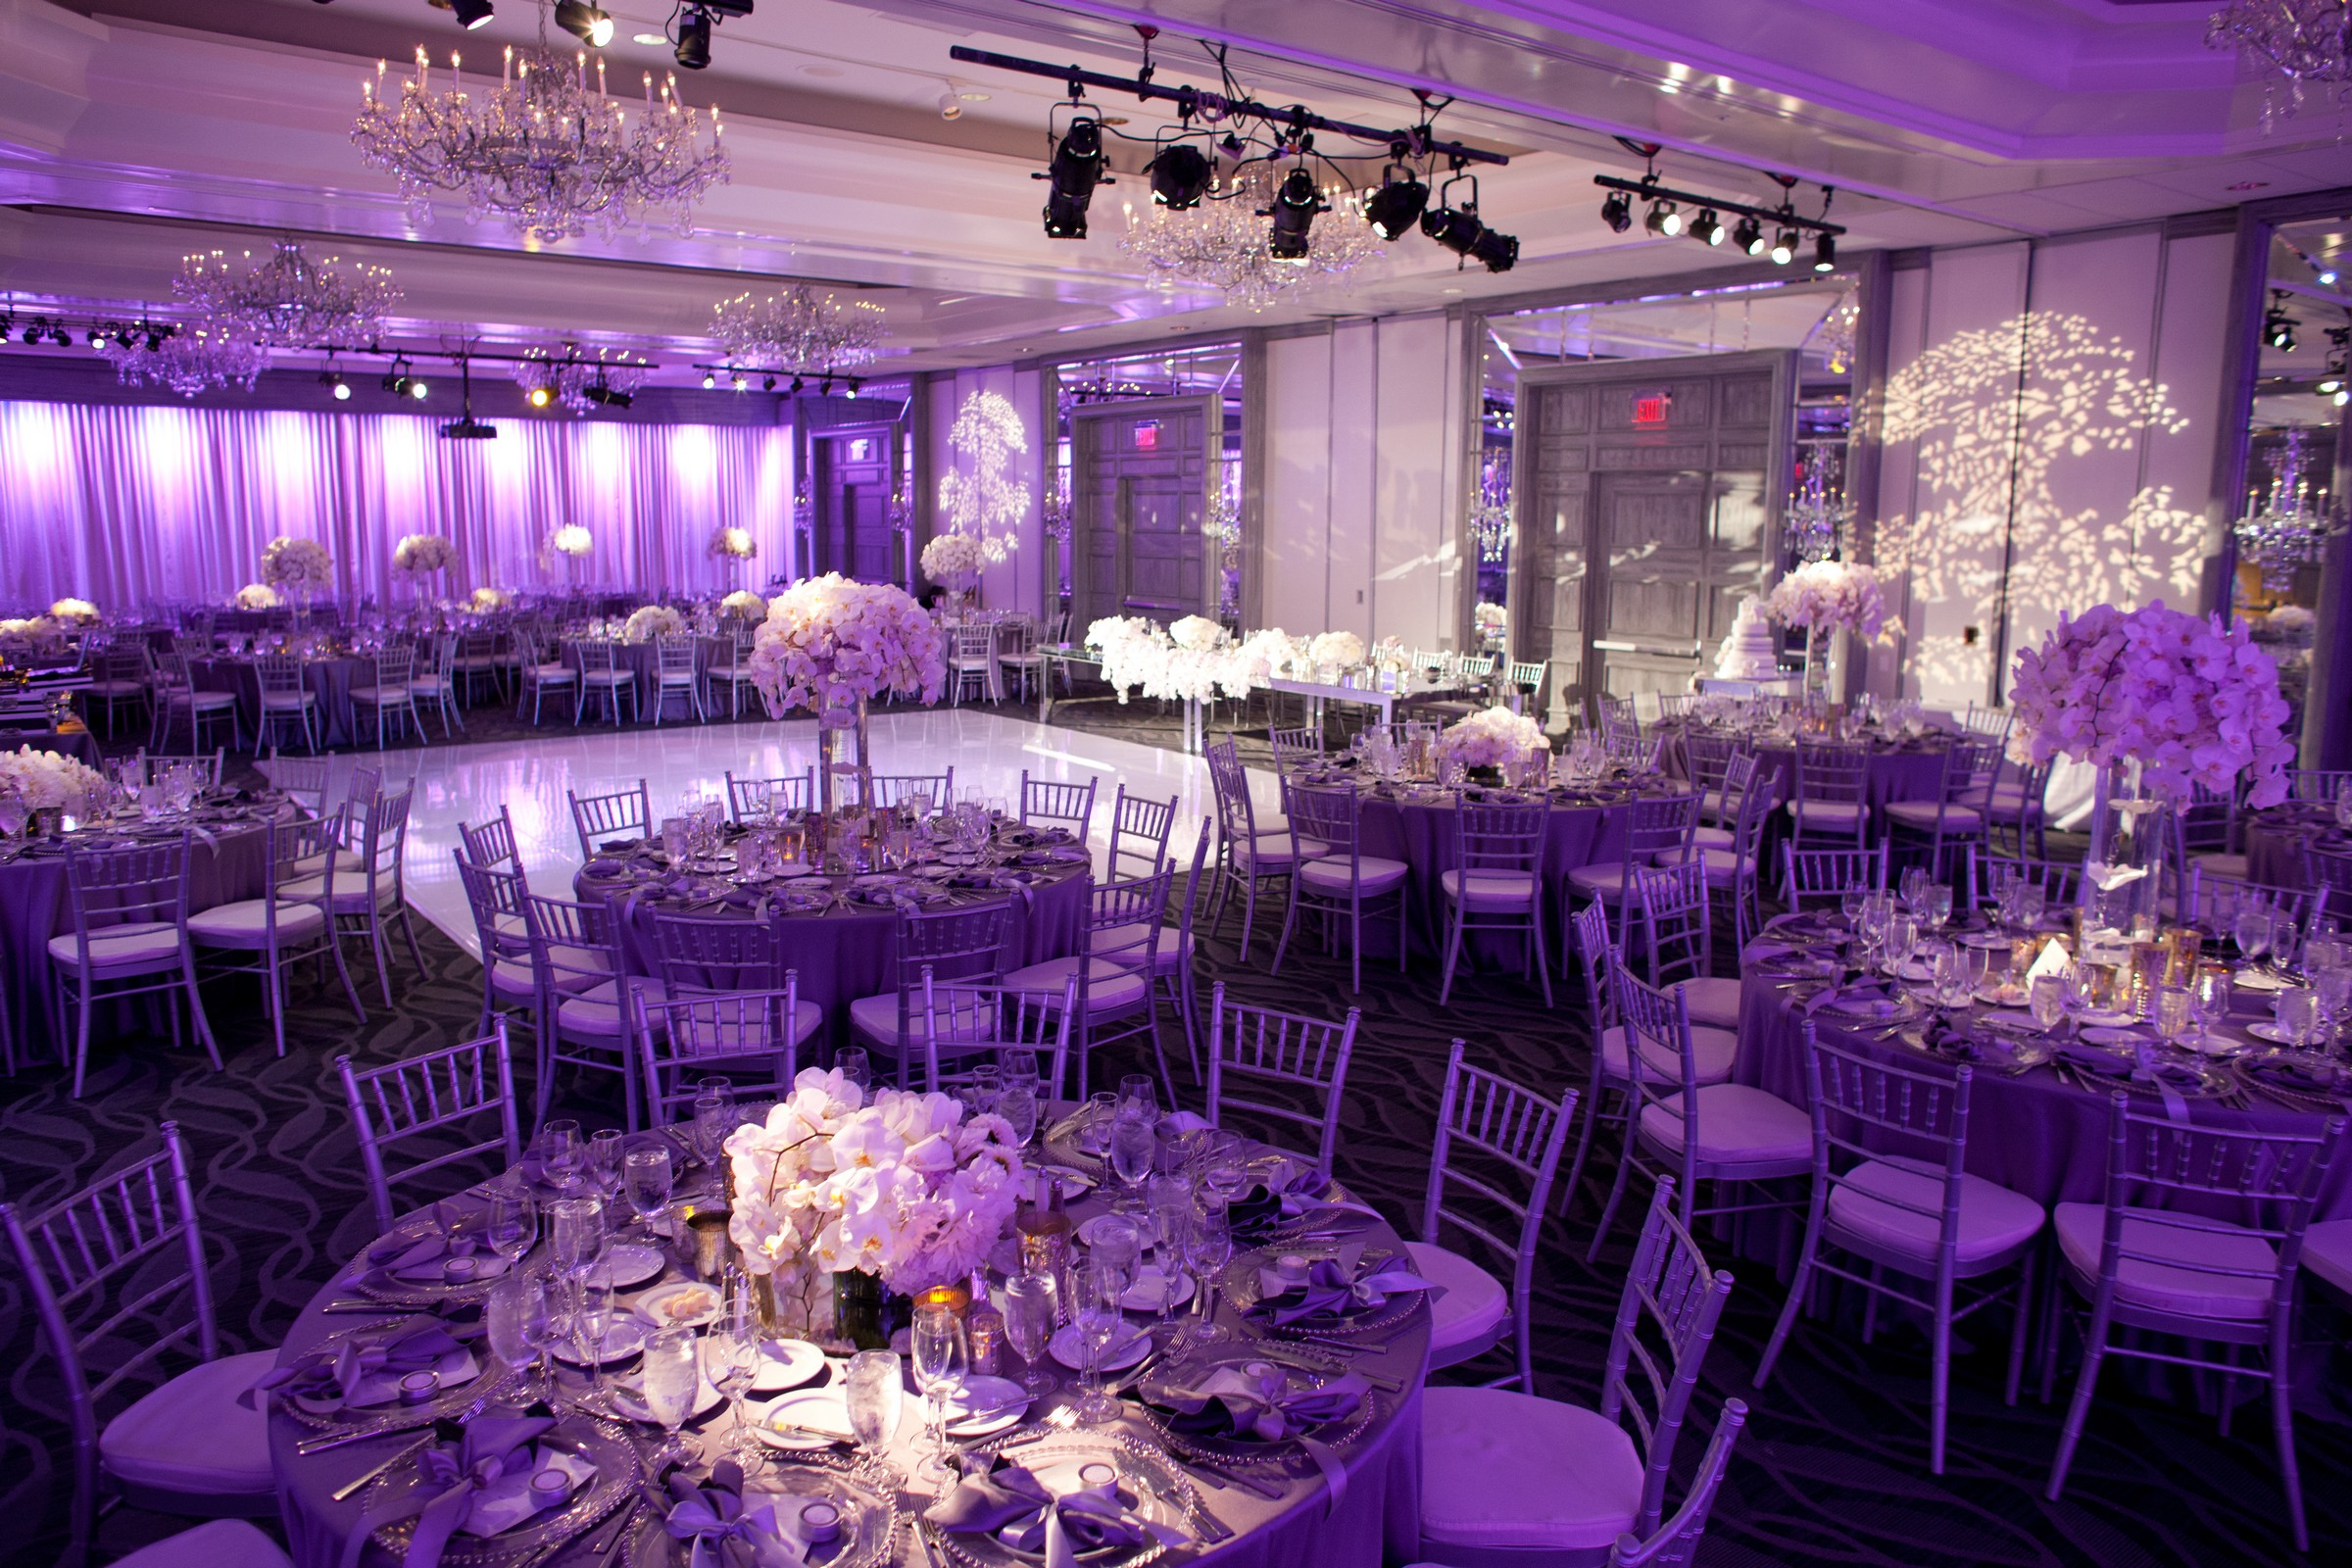 Great View Of The Ballroom Setup For A Reception